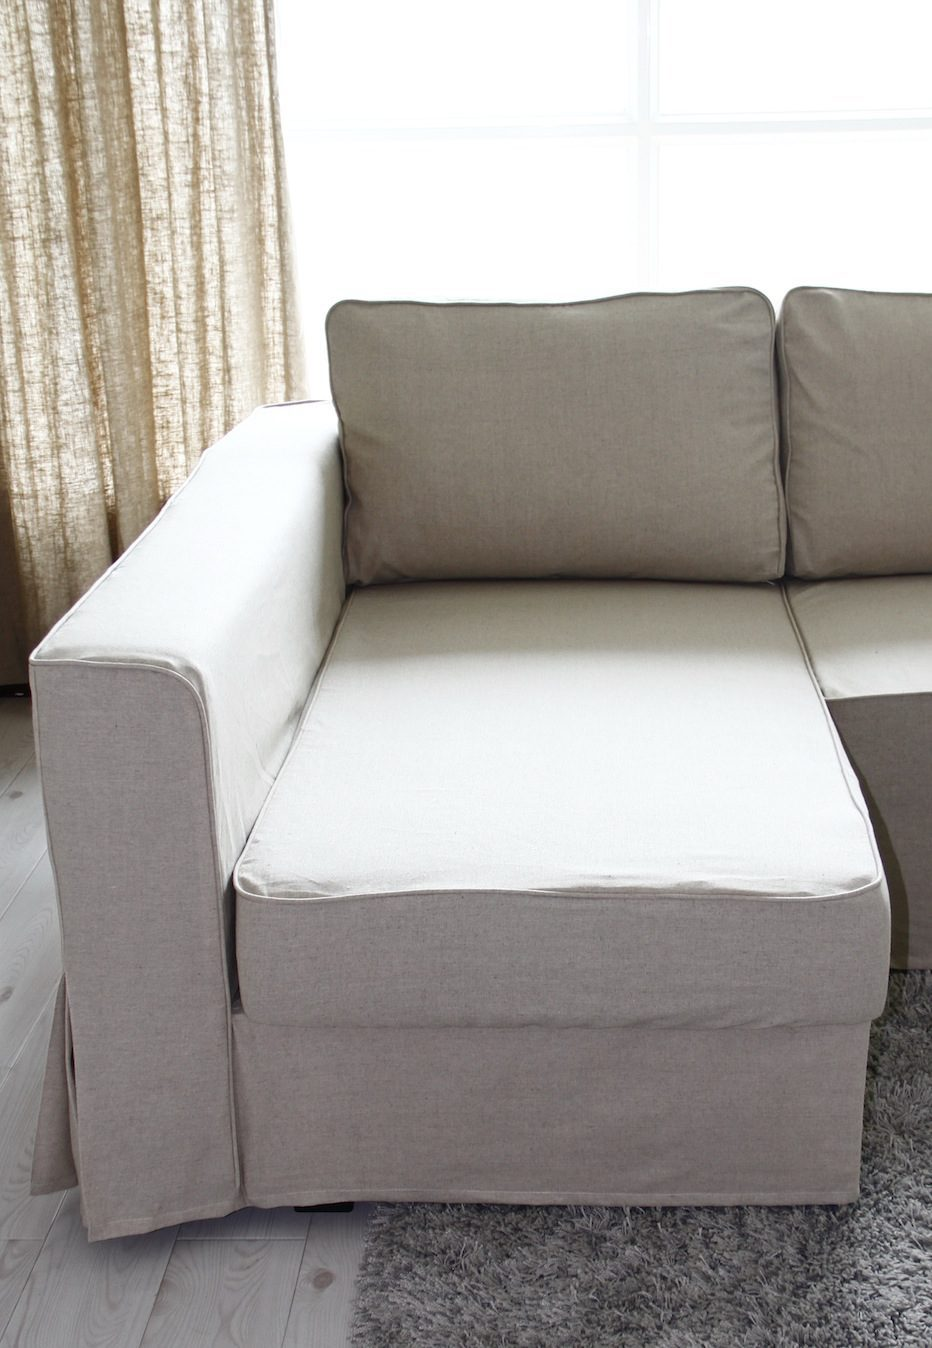 linen sofa slipcover custom sofas los angeles ca loose fit manstad slipcovers now available individual cover for the chaise s seat cushion allows access to storage